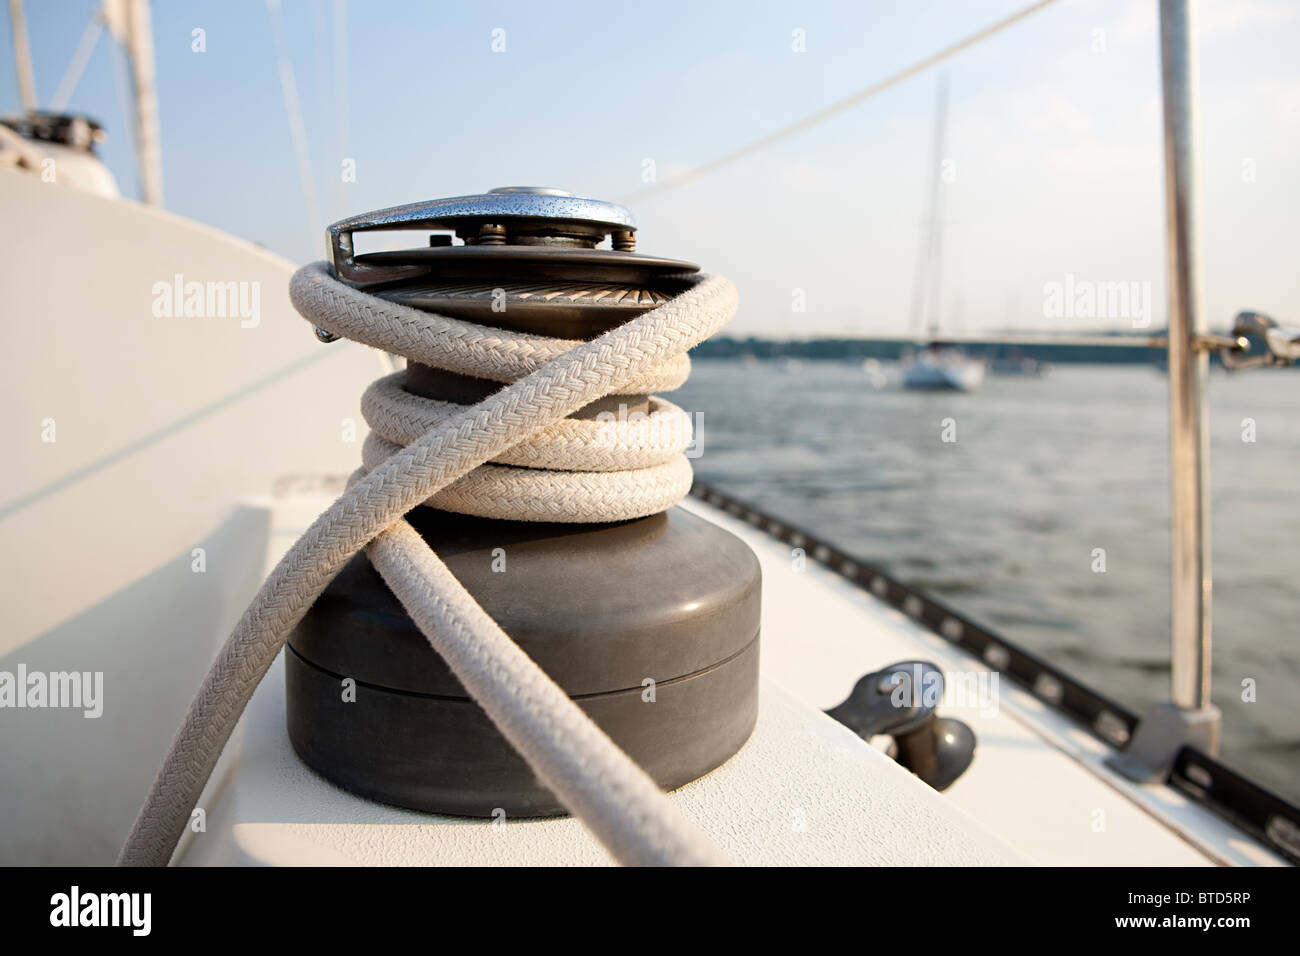 Rope on yacht, close up - Stock Image